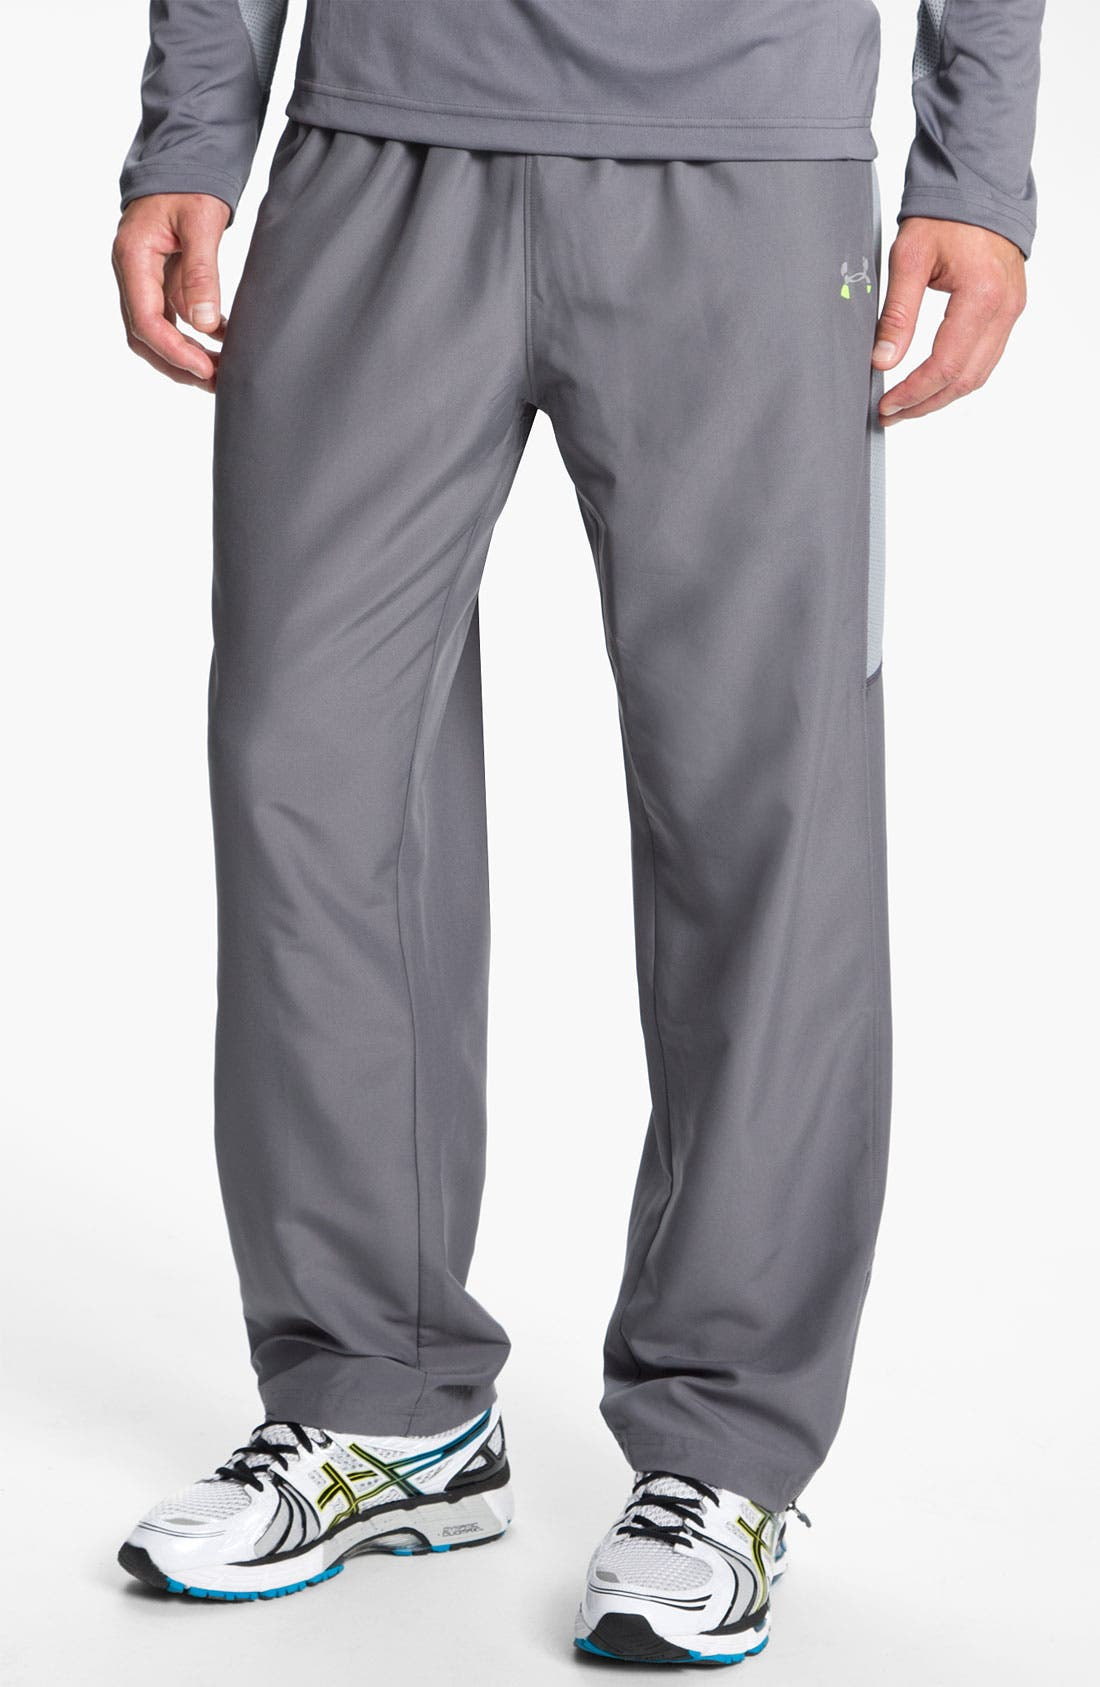 Main Image - Under Armour 'Trackside' HeatGear® Woven Track Pants